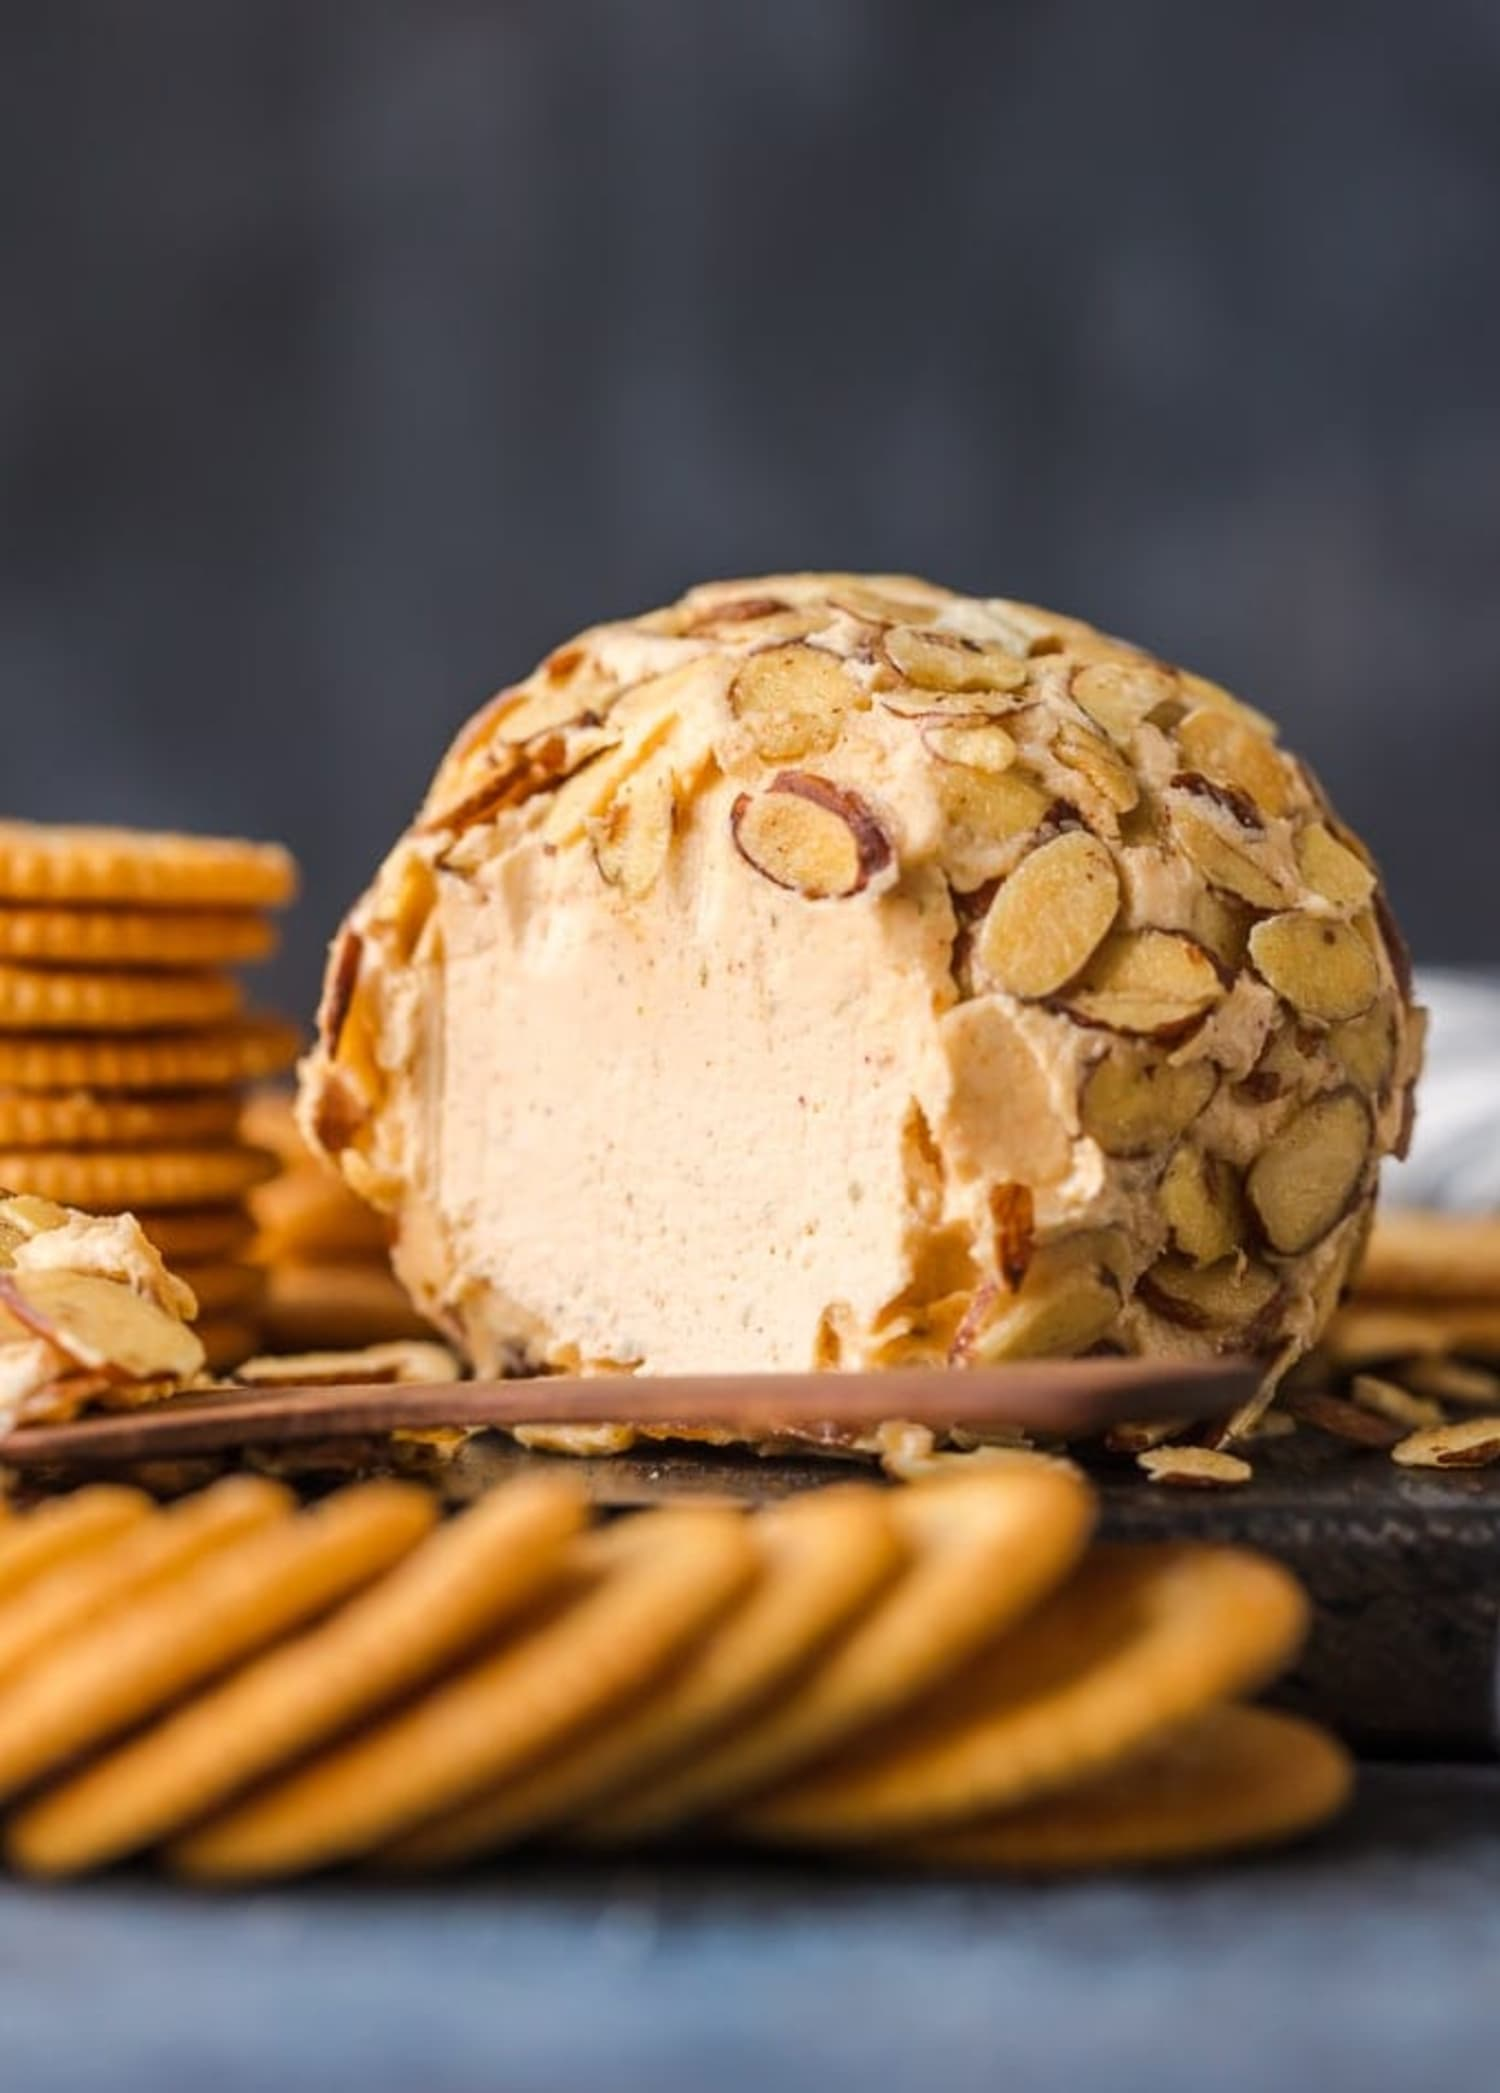 This Classic Cheese Ball Is the Best Thing to Happen to a Plate of Crackers